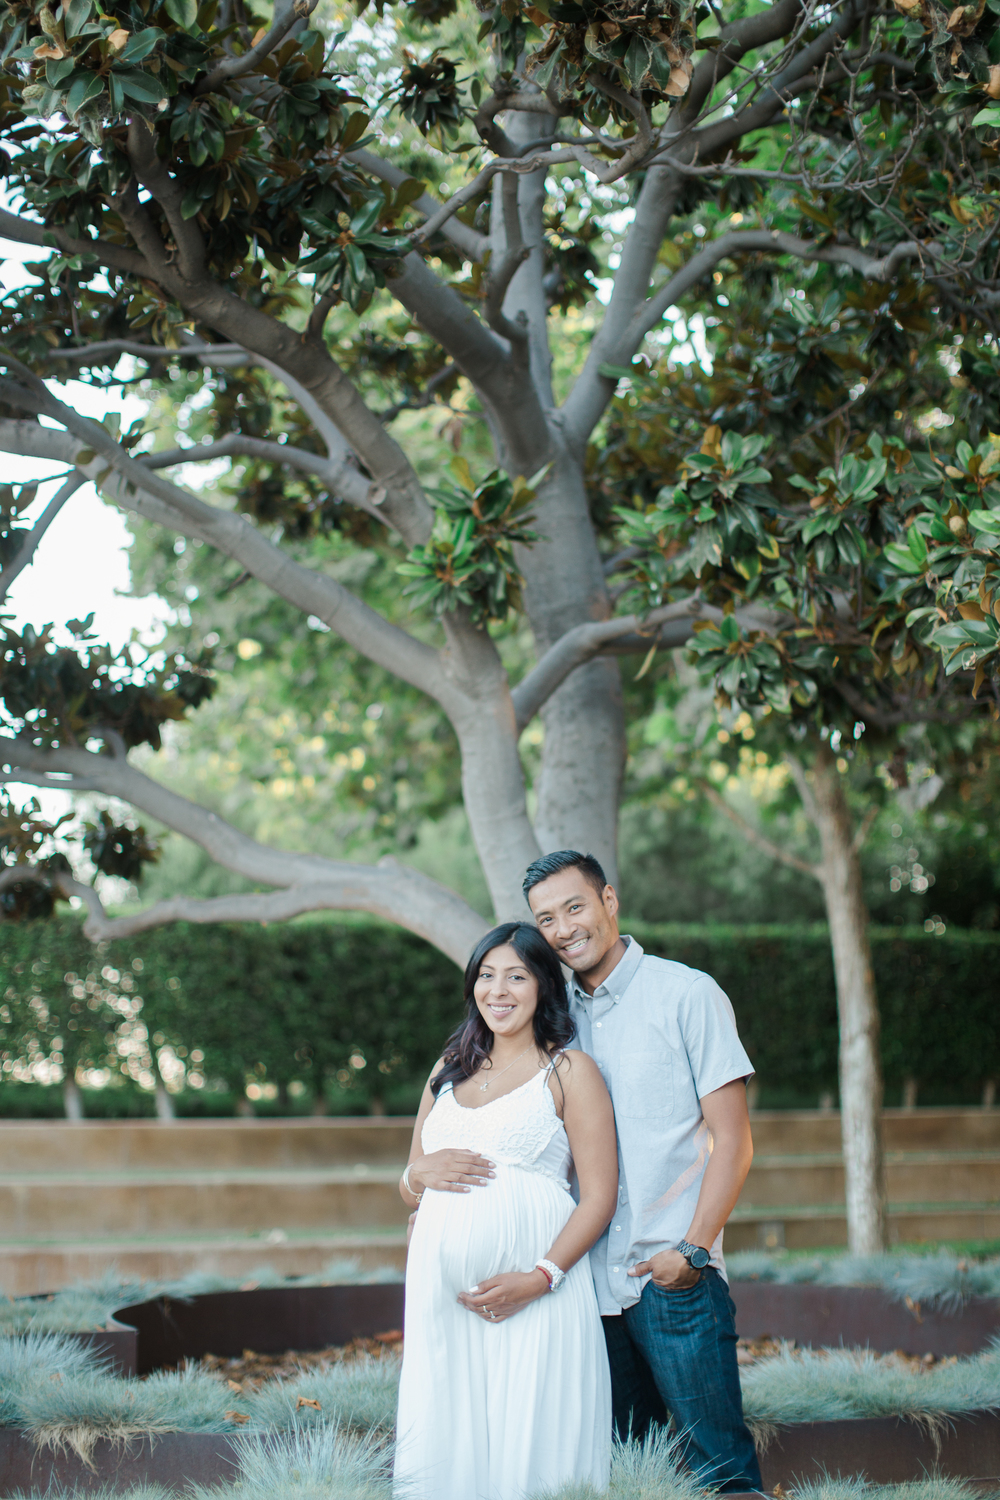 Marcella_Maternity_Cerritos_BrandonJFerlin_Photography-82.jpg